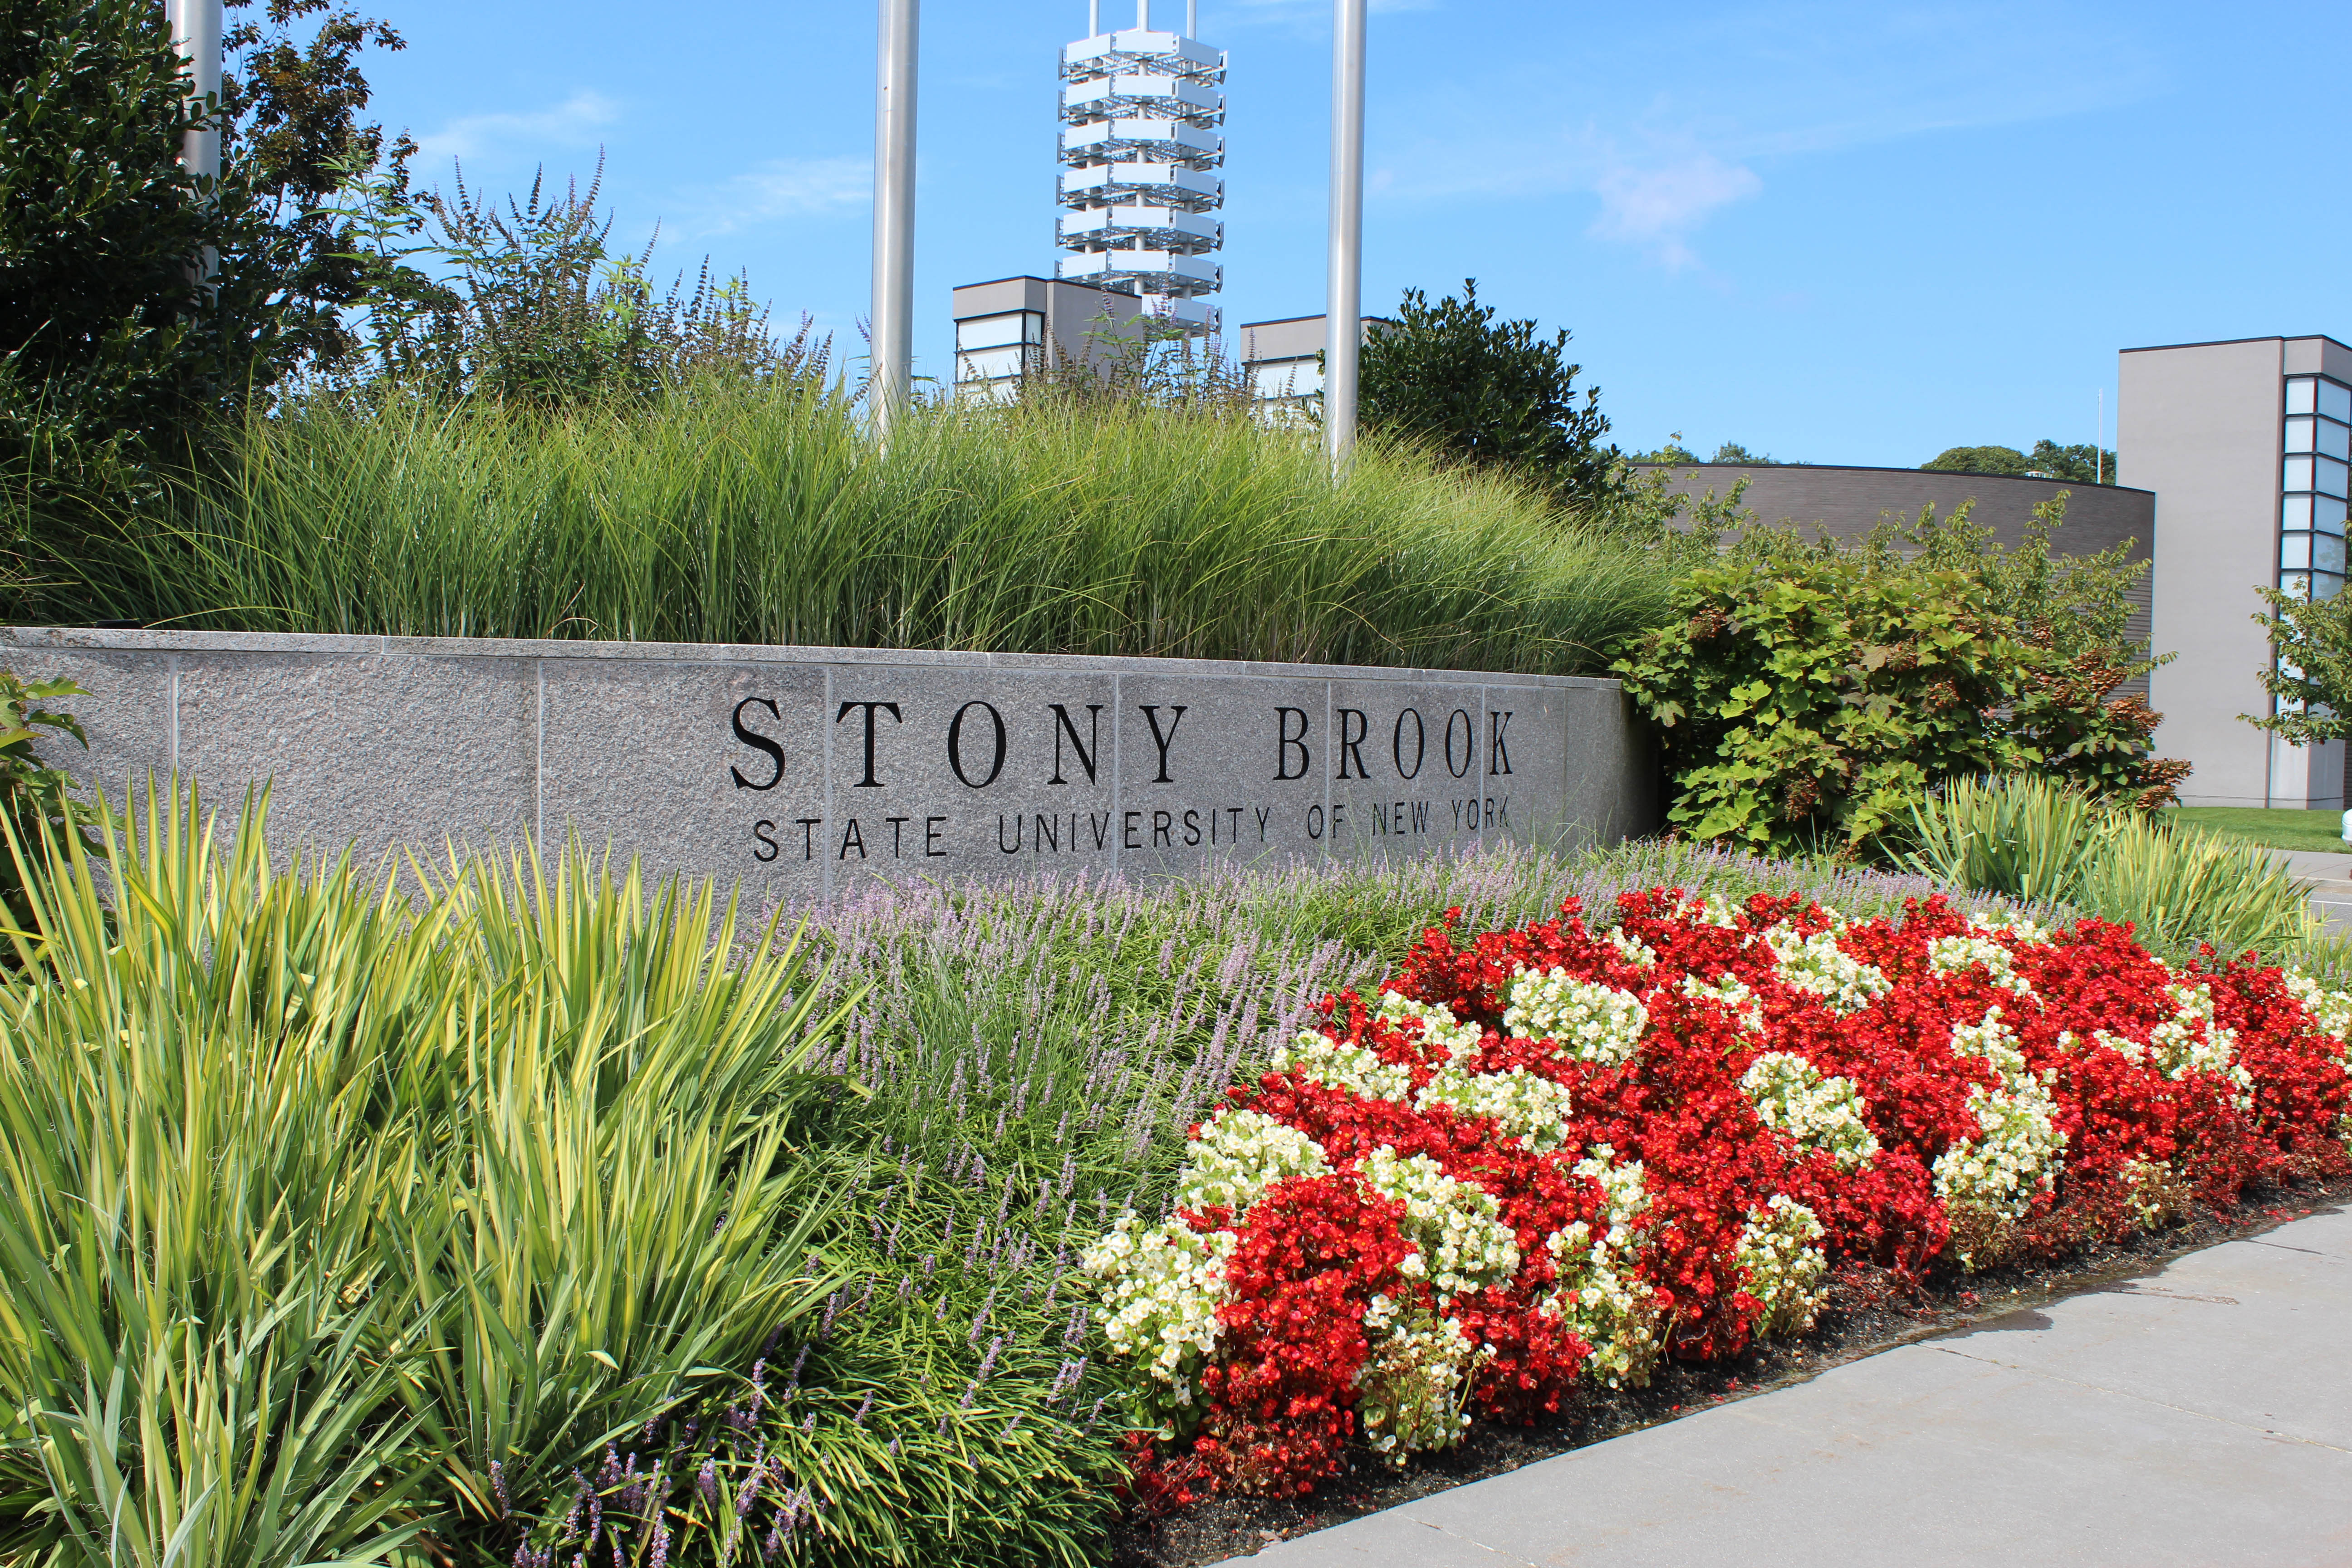 Stony brook ups